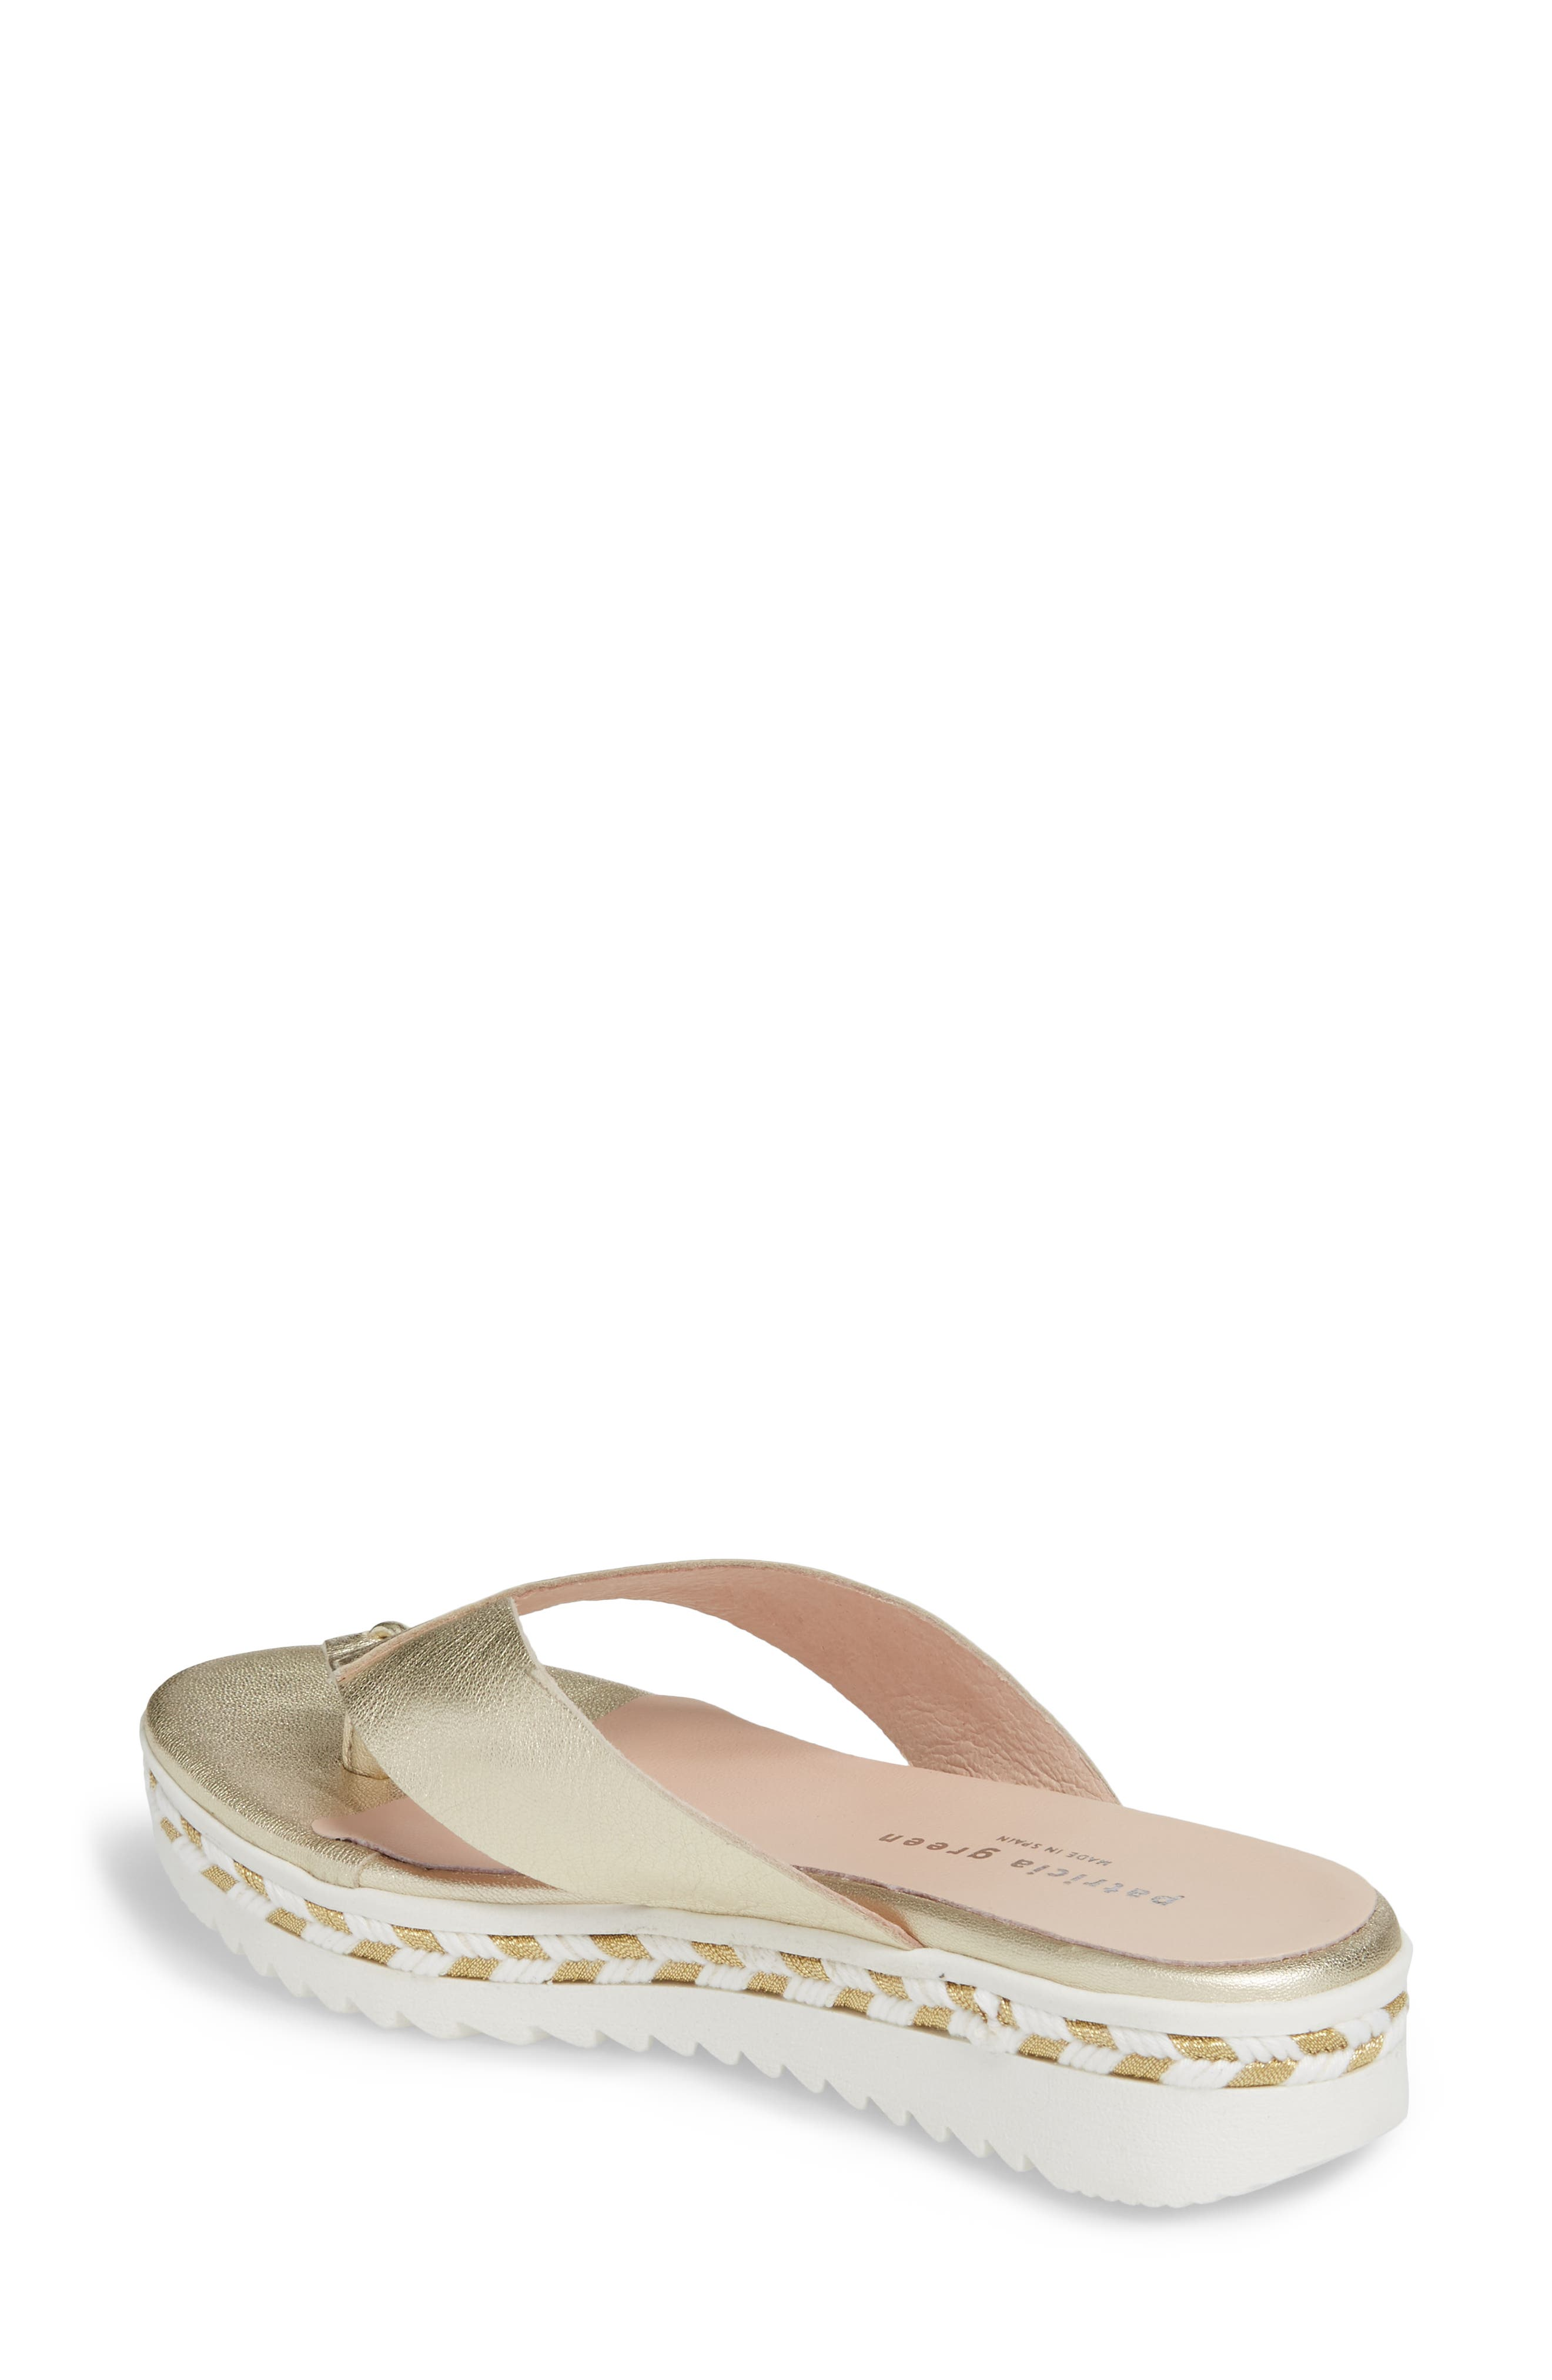 Brooklyn Wedge Flip Flop,                             Alternate thumbnail 2, color,                             Gold Leather